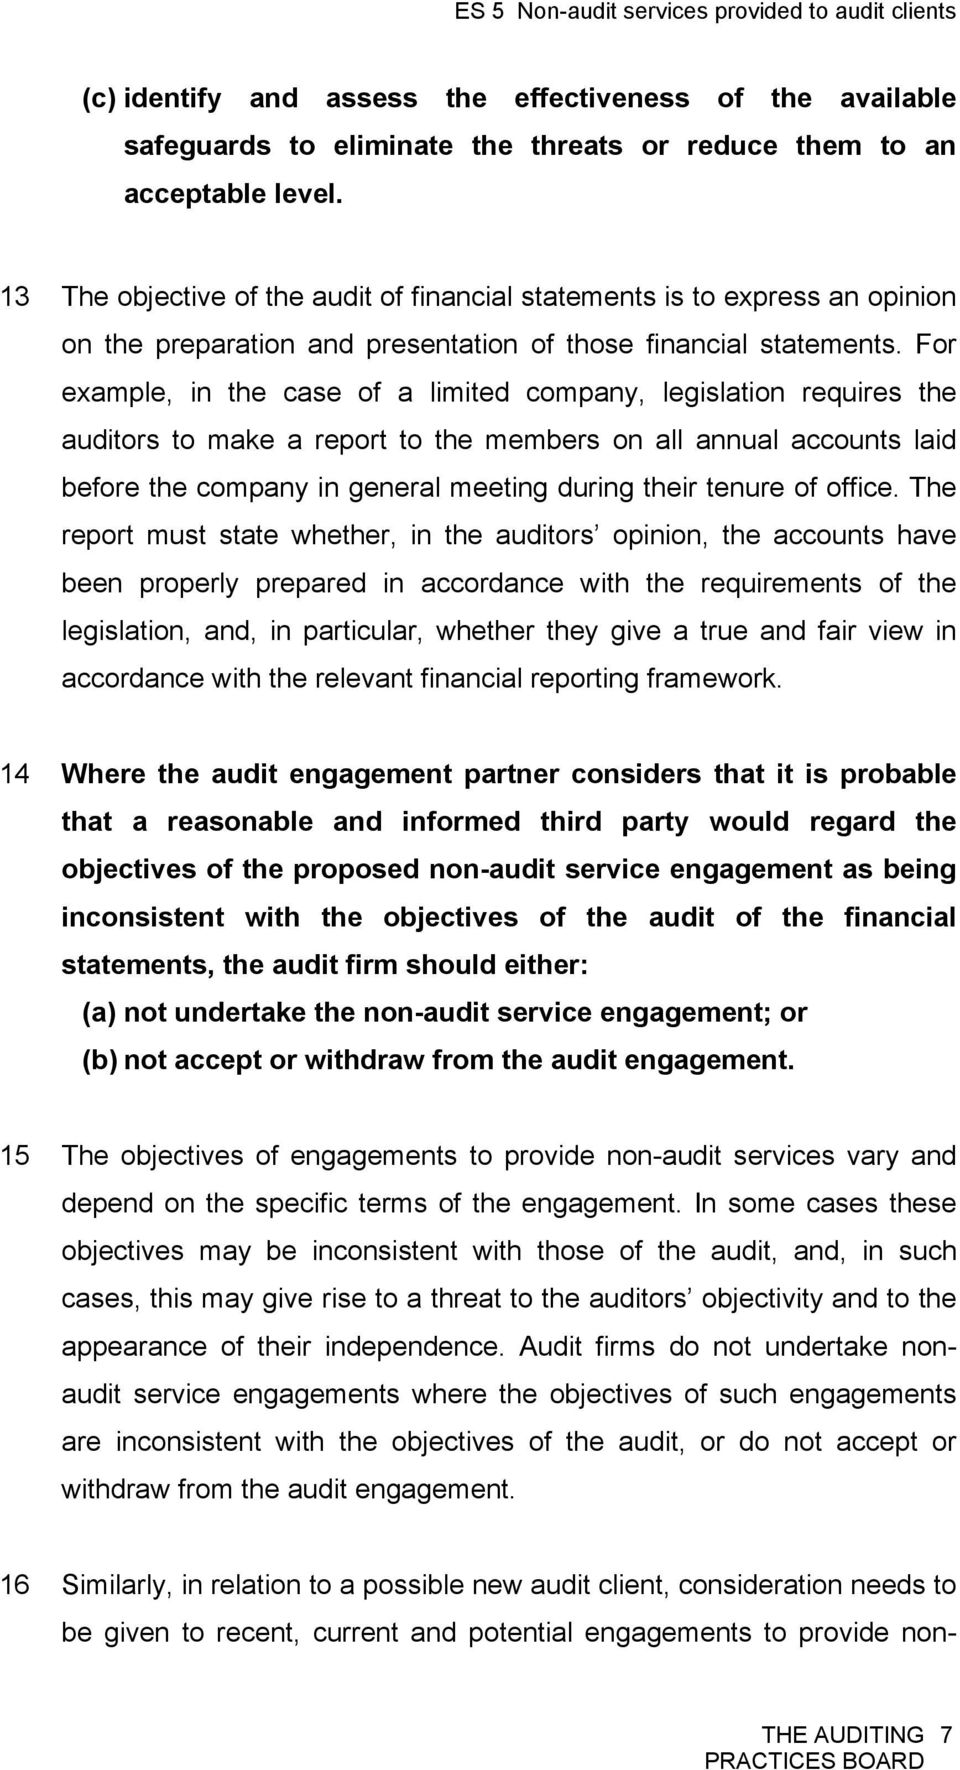 For example, in the case of a limited company, legislation requires the auditors to make a report to the members on all annual accounts laid before the company in general meeting during their tenure